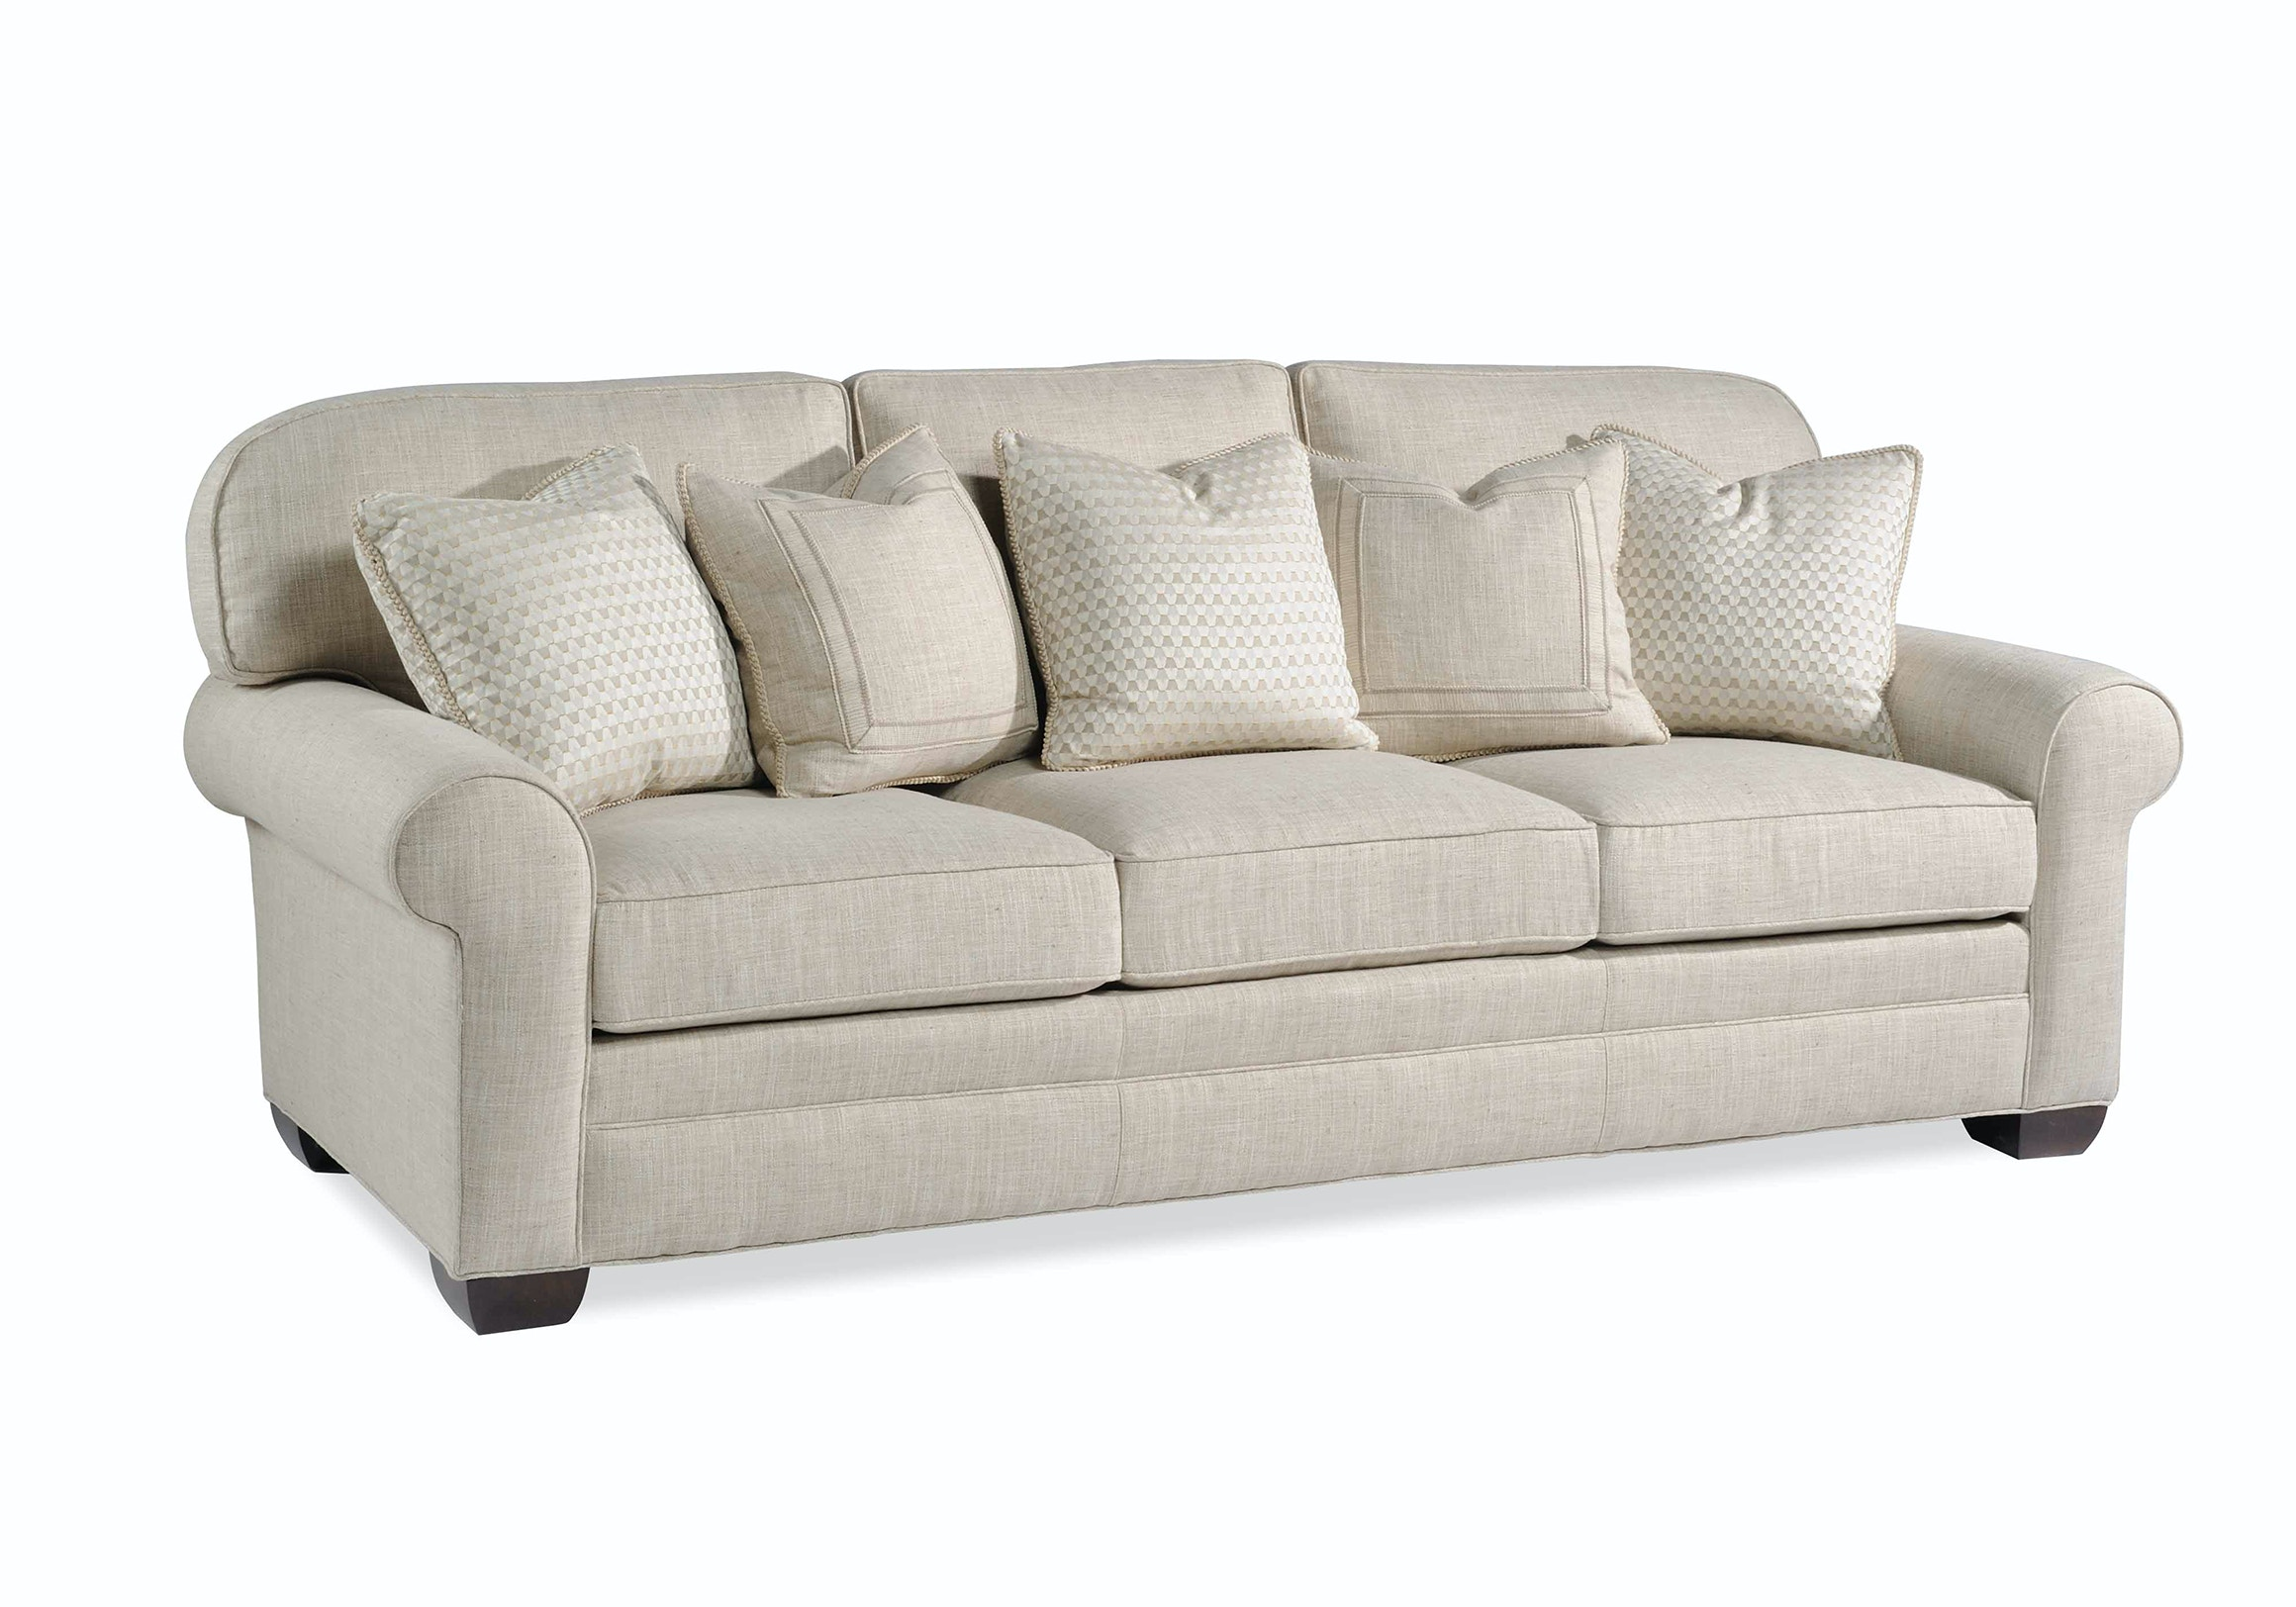 Taylor King Furniture C4592 98 Living Room Taylor Made Continental